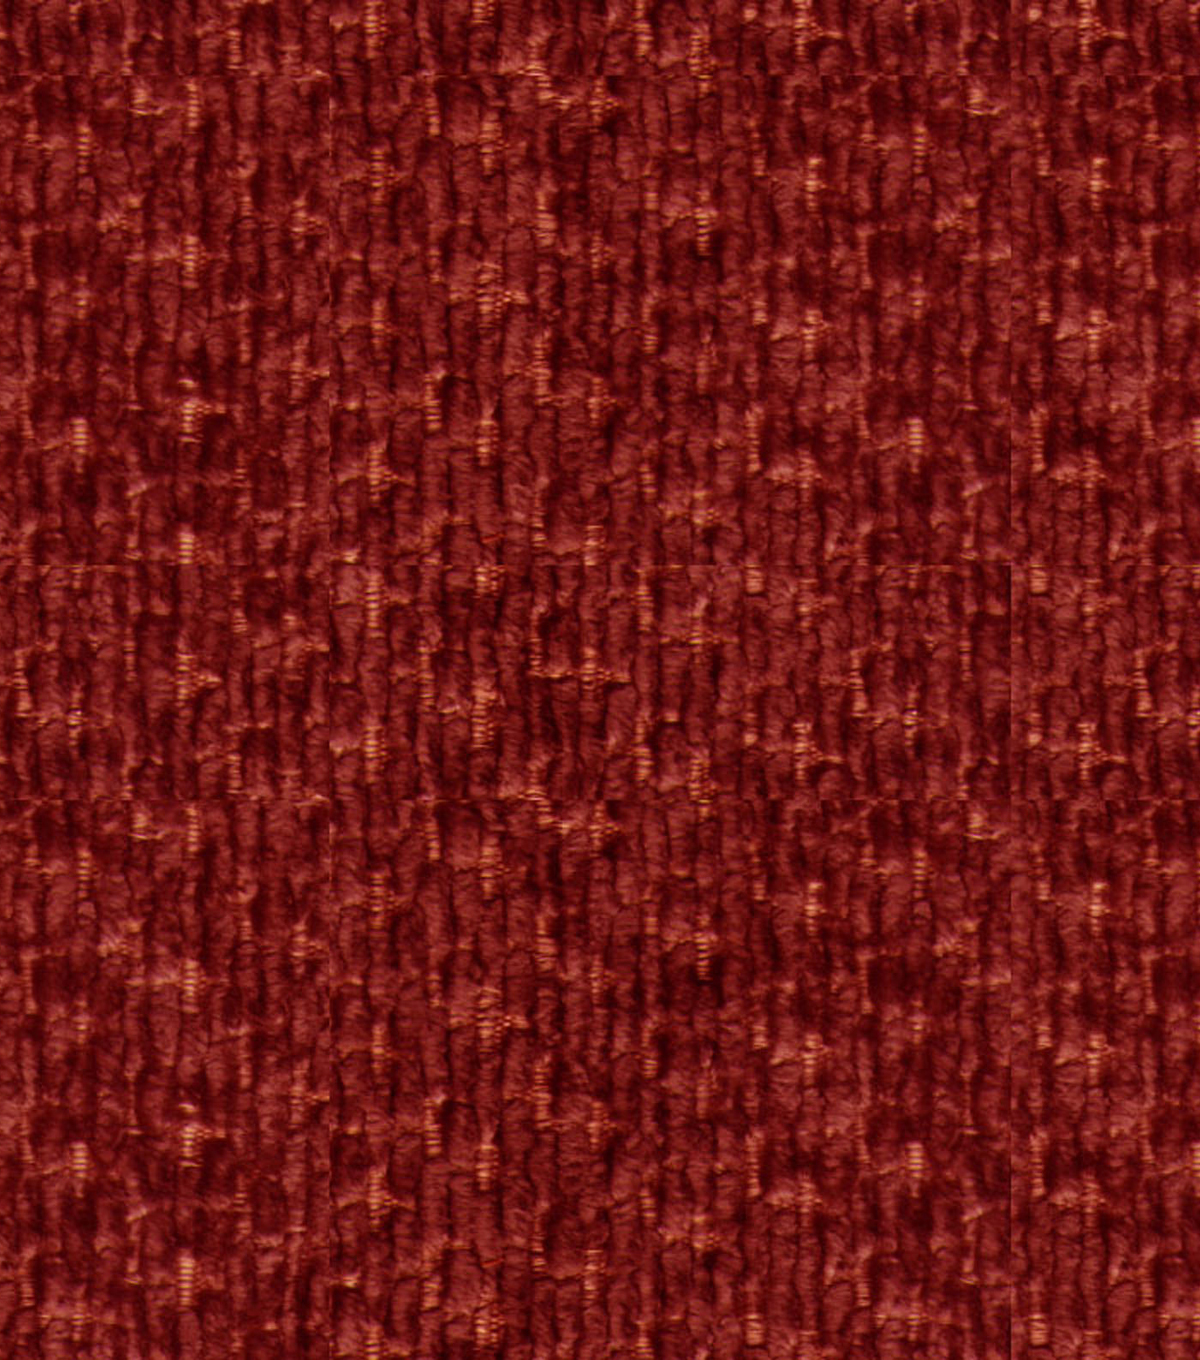 Home Decor 8\u0022x8\u0022 Fabric Swatch-Barrow M6795-5449 Pompeii